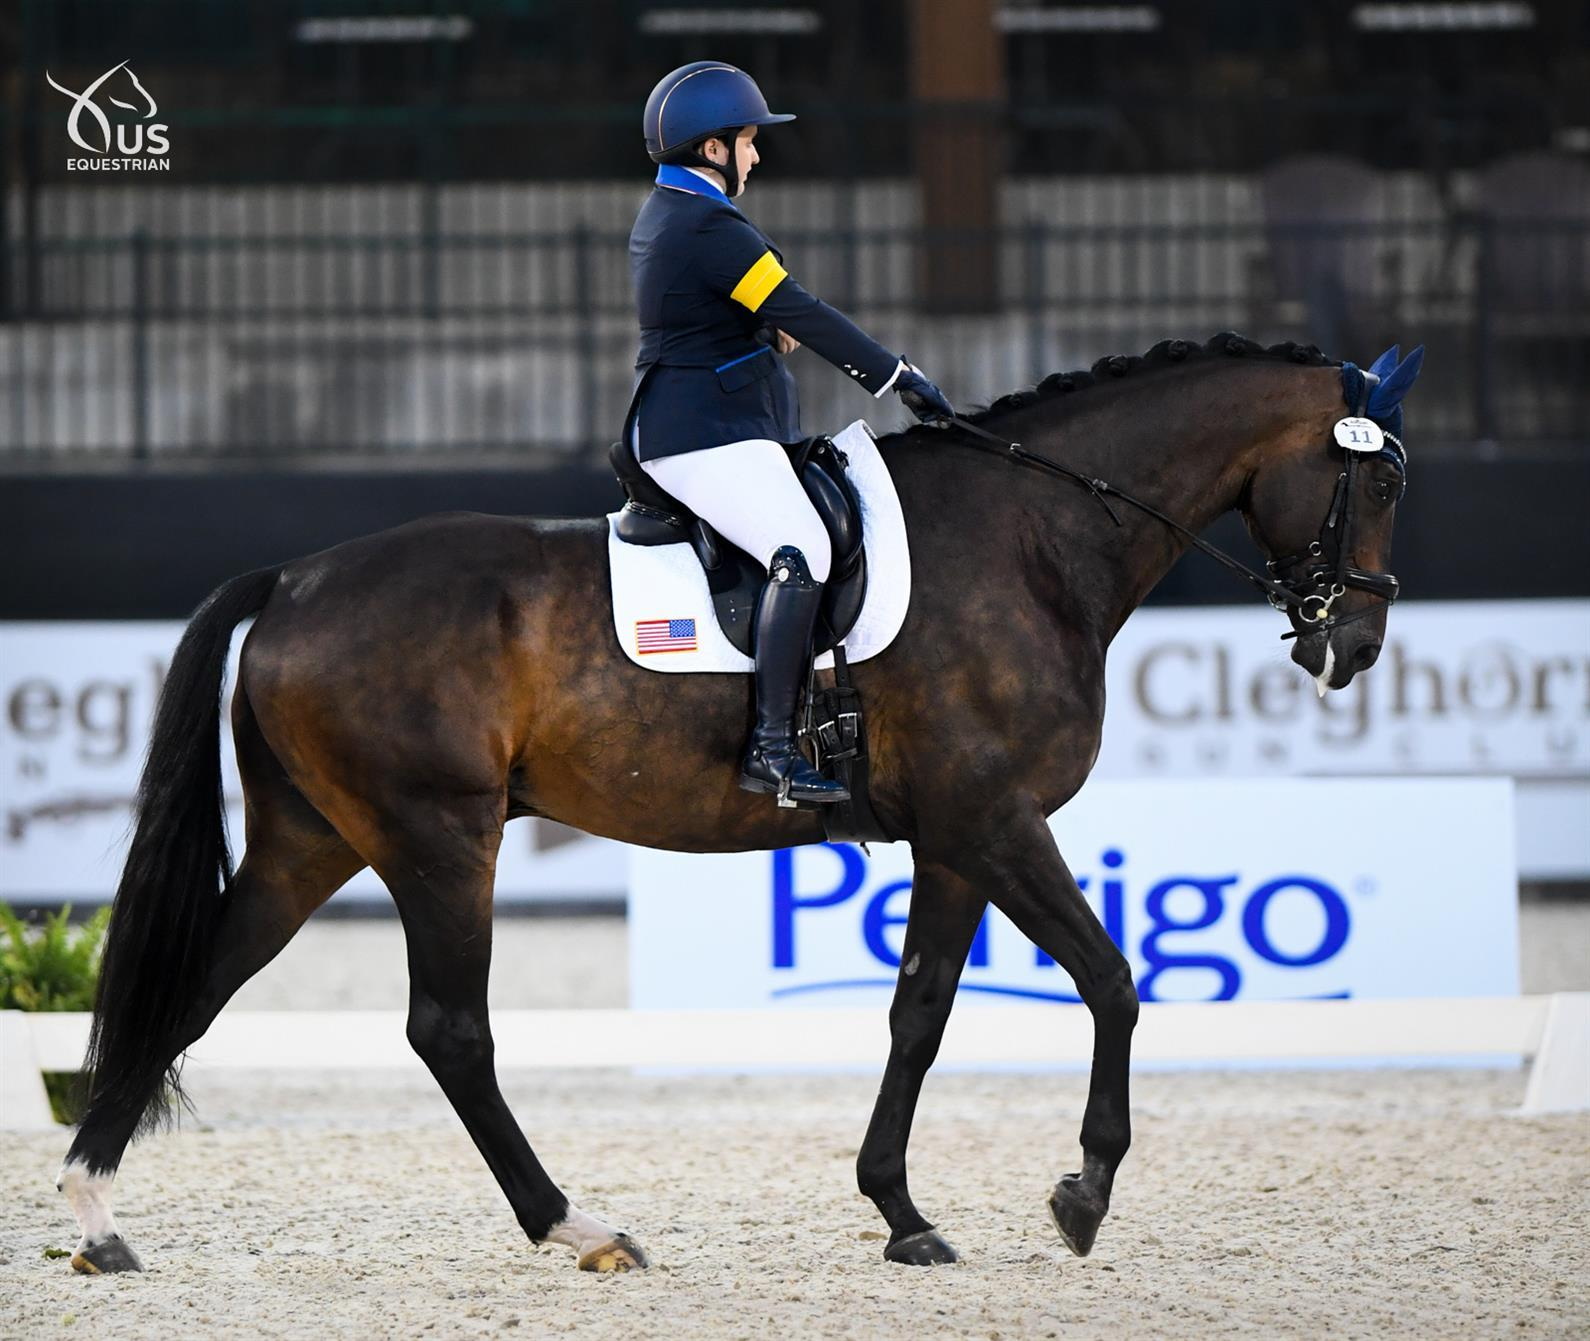 Sydney Collier and All In One at the Perrigo Tryon Sumer Dressage CPEDI3*